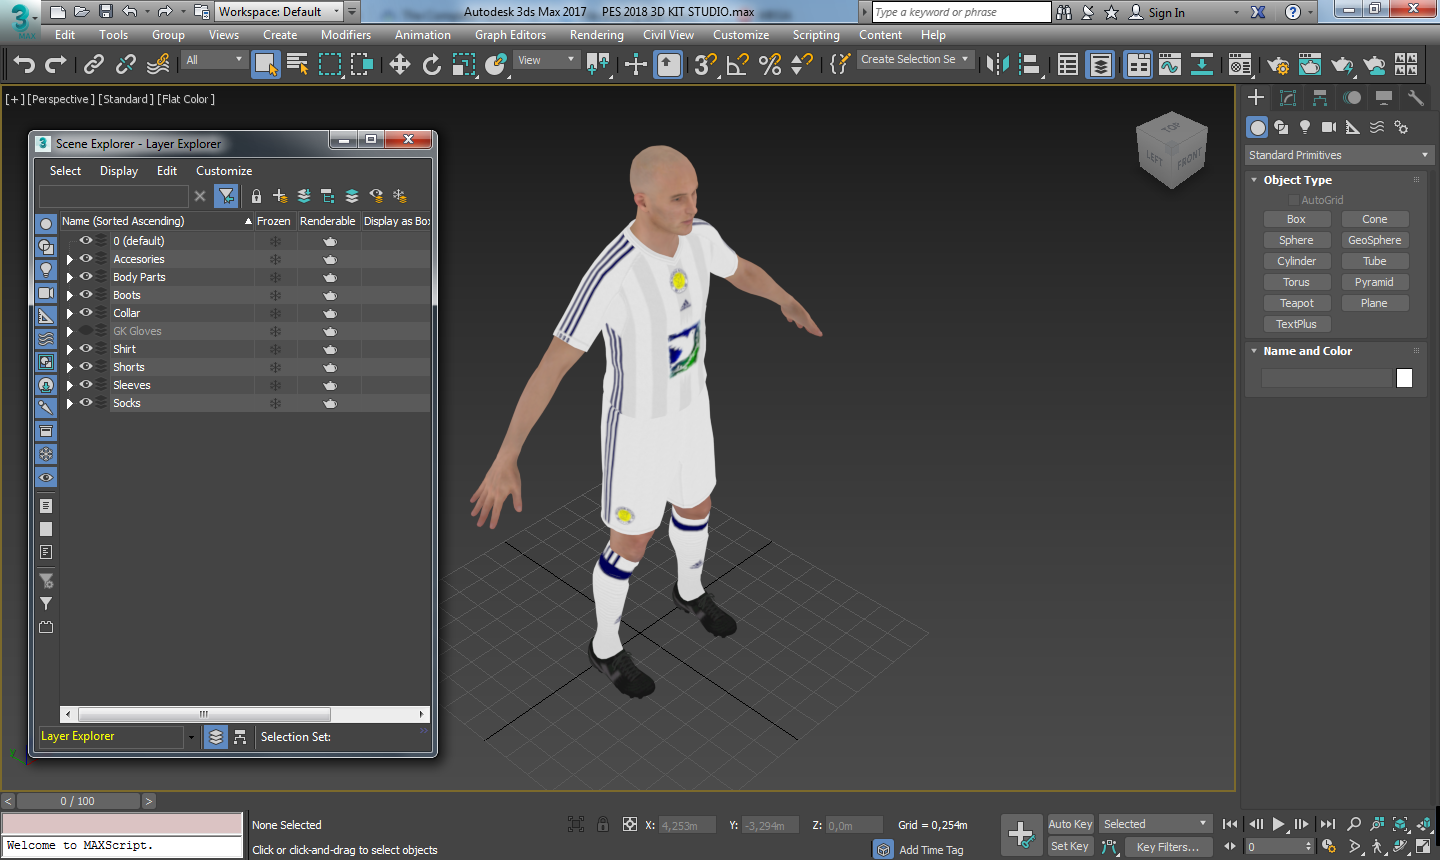 PES 2018 3D KIT STUDIO | BLOG